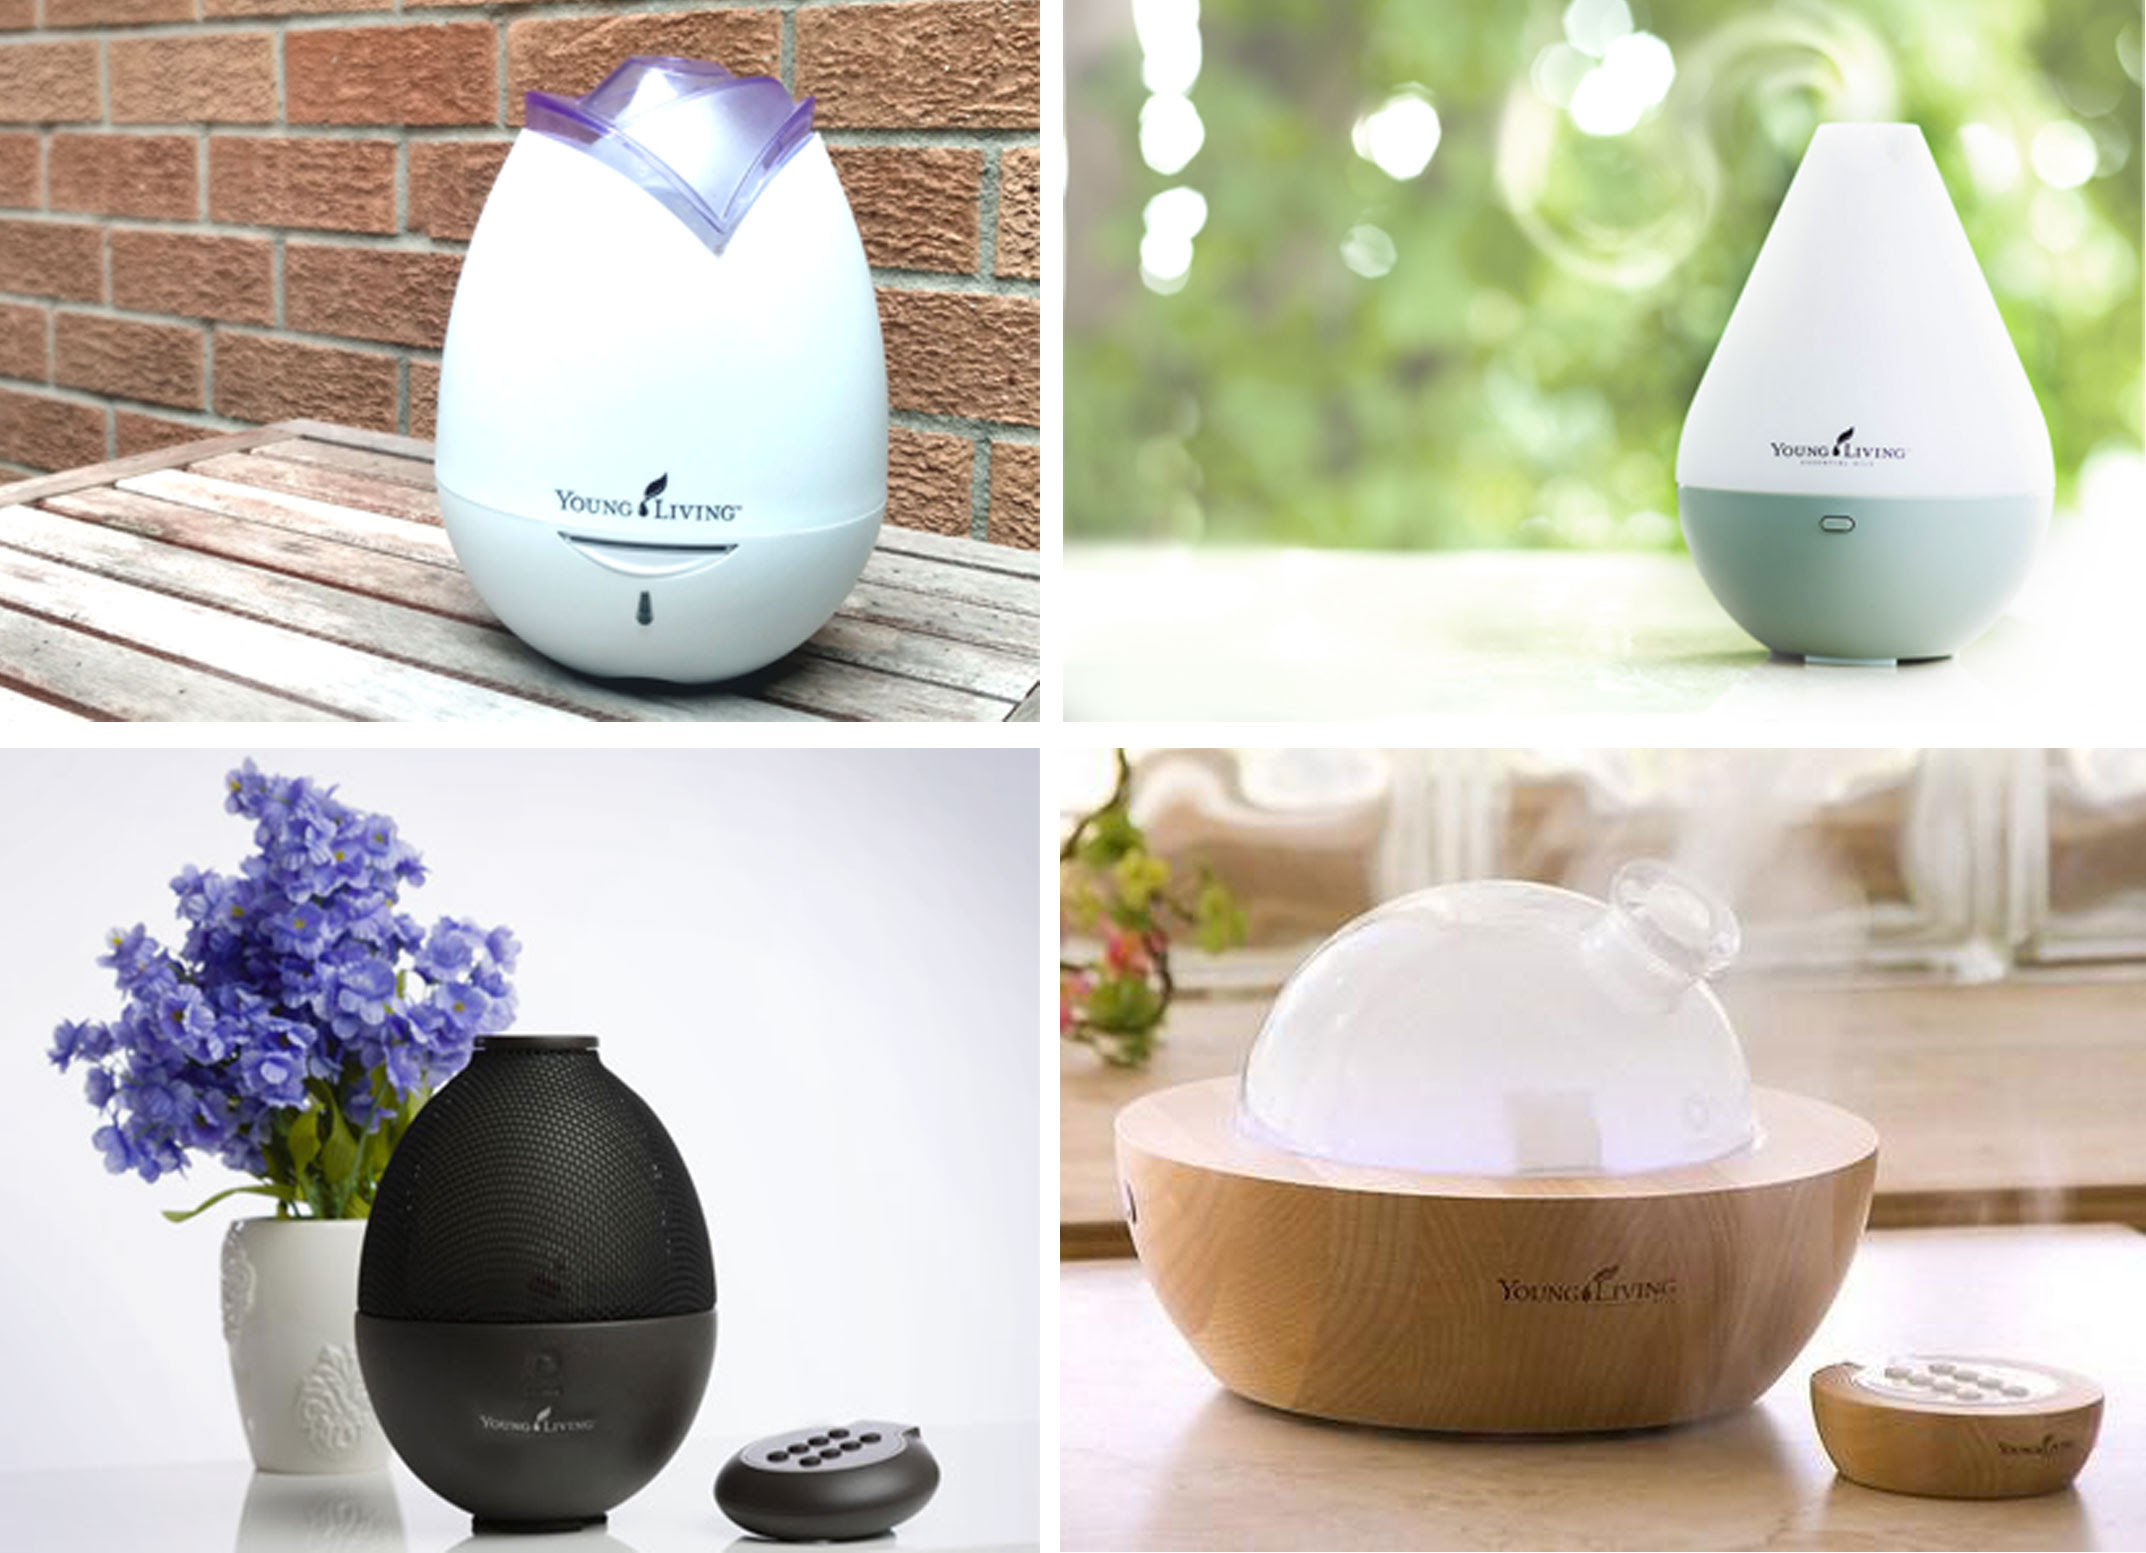 Explore The Diffusers The Spunky Oils